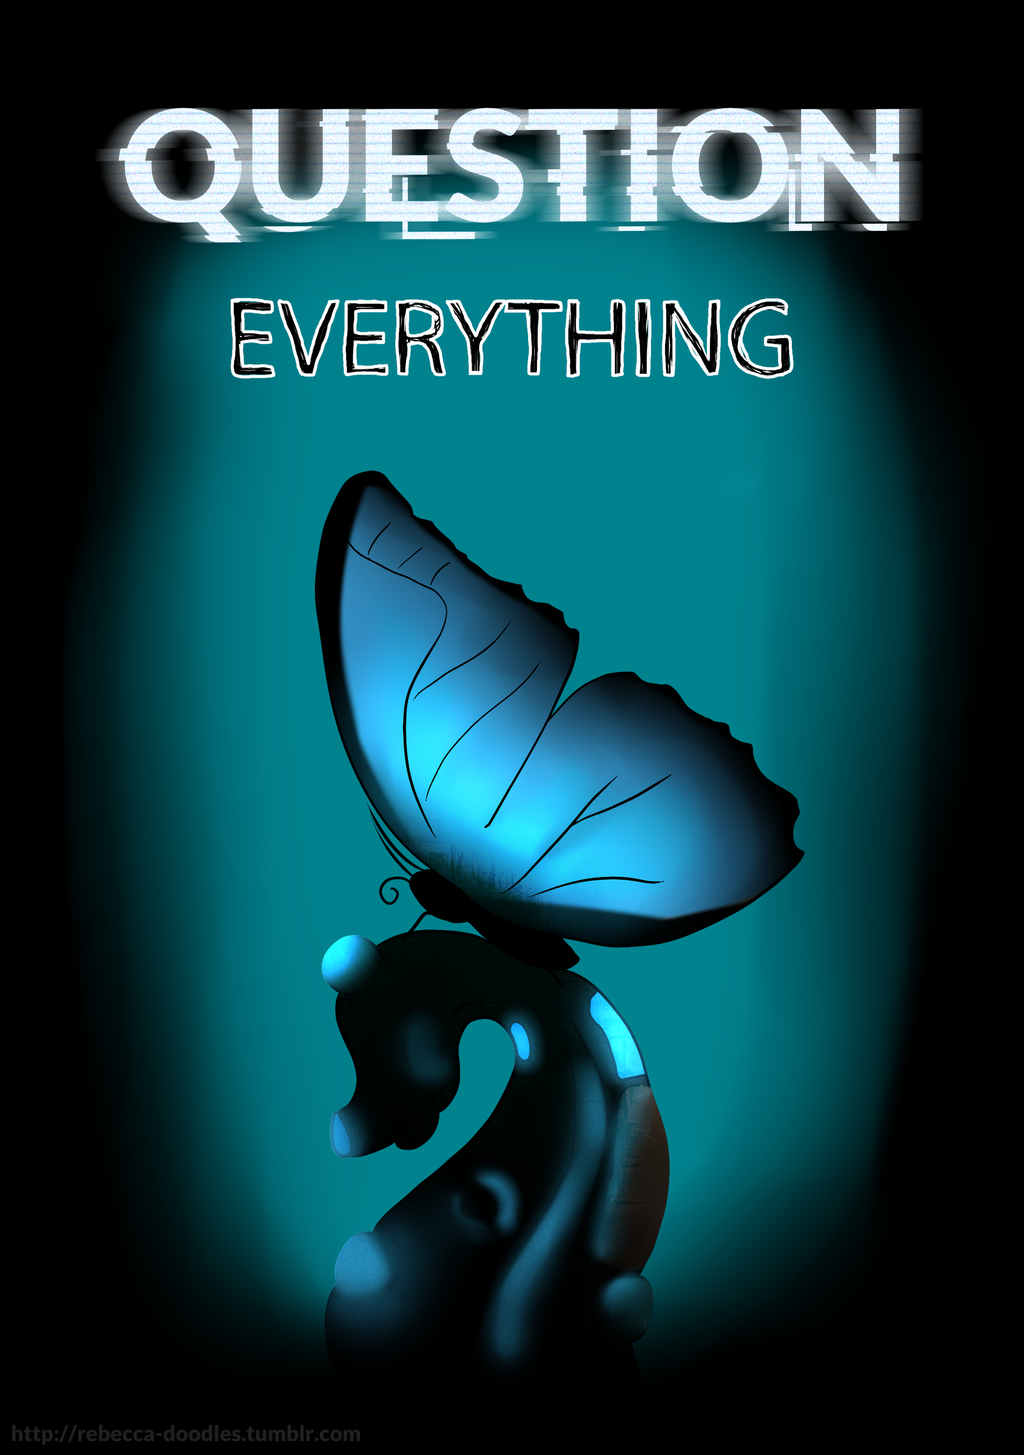 Question Everything by Rebecca-doodles